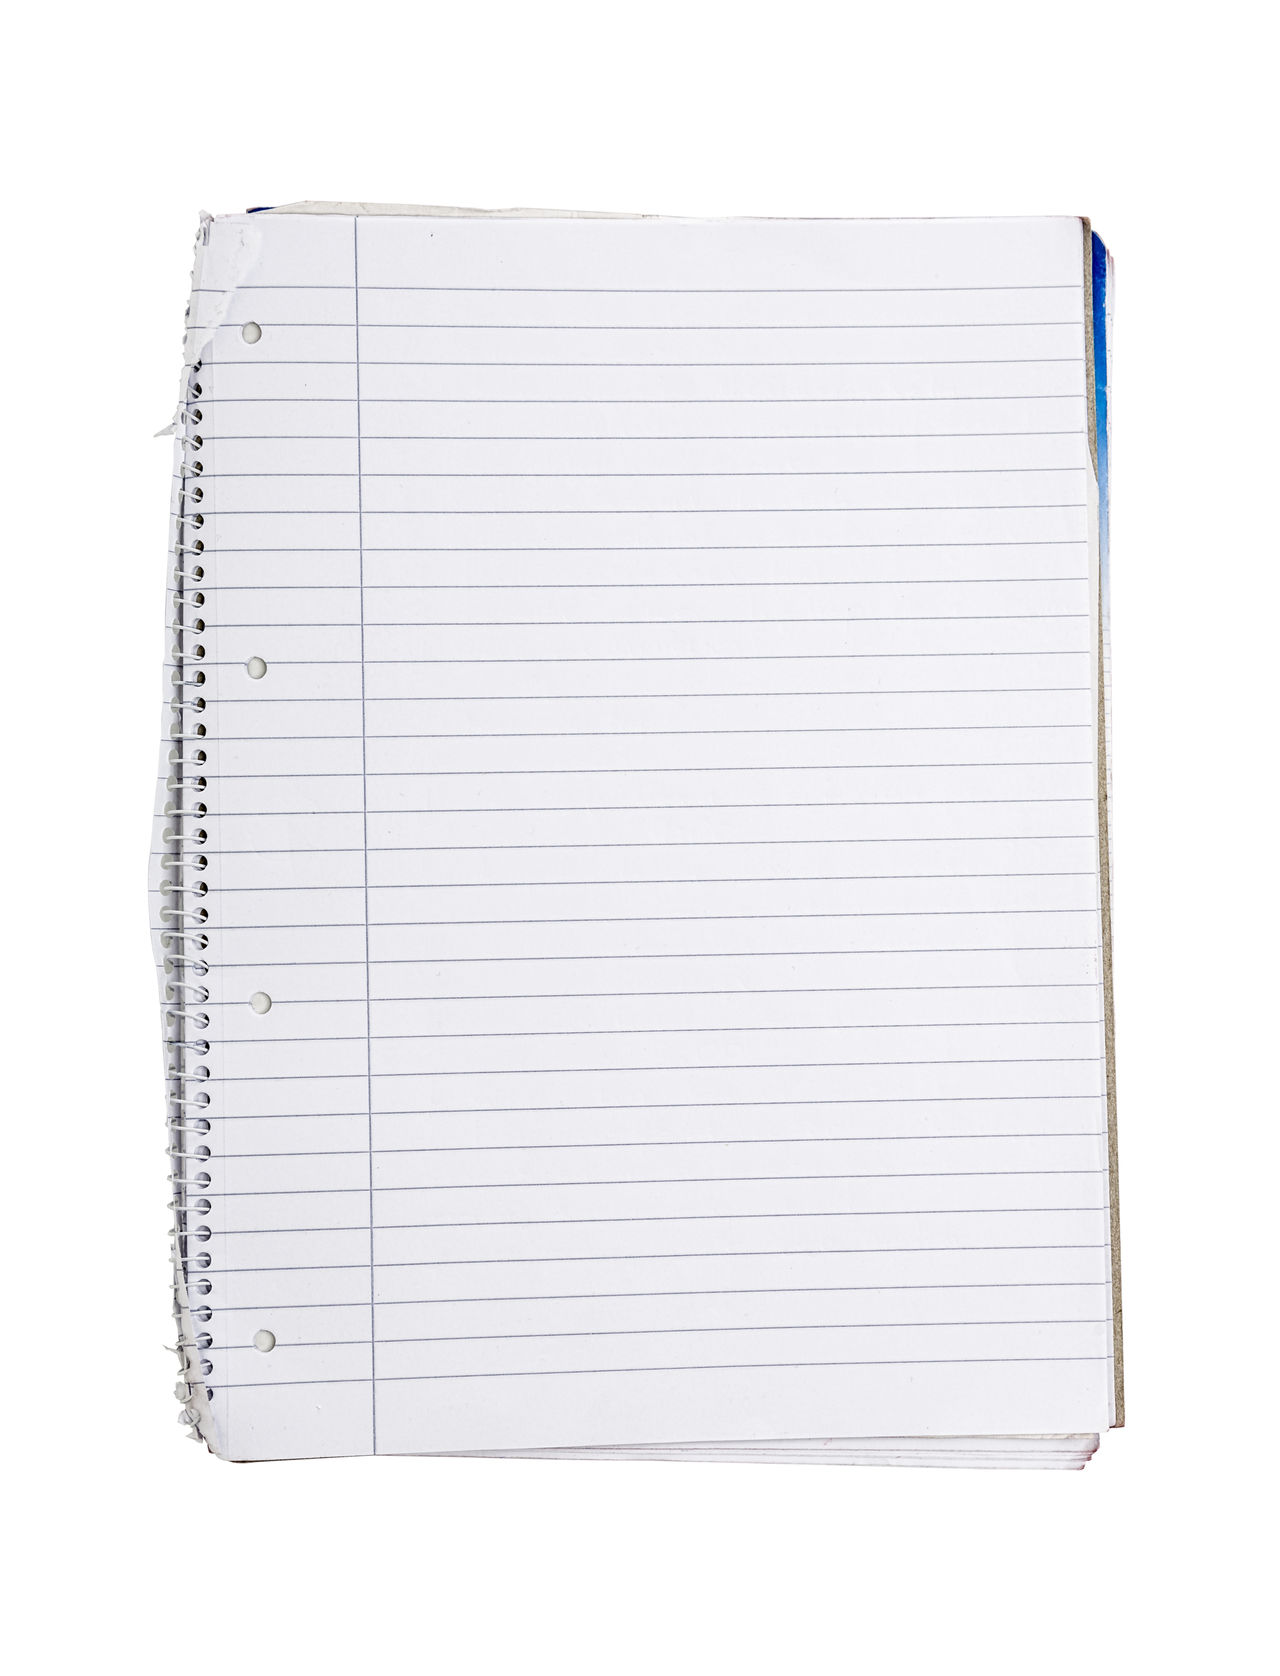 Binder Blank Book Business Copy Space Design Diary Empty Isolated Lines Note NotePad Object Office Page Paper Ringbinder School Template Textbook White Write